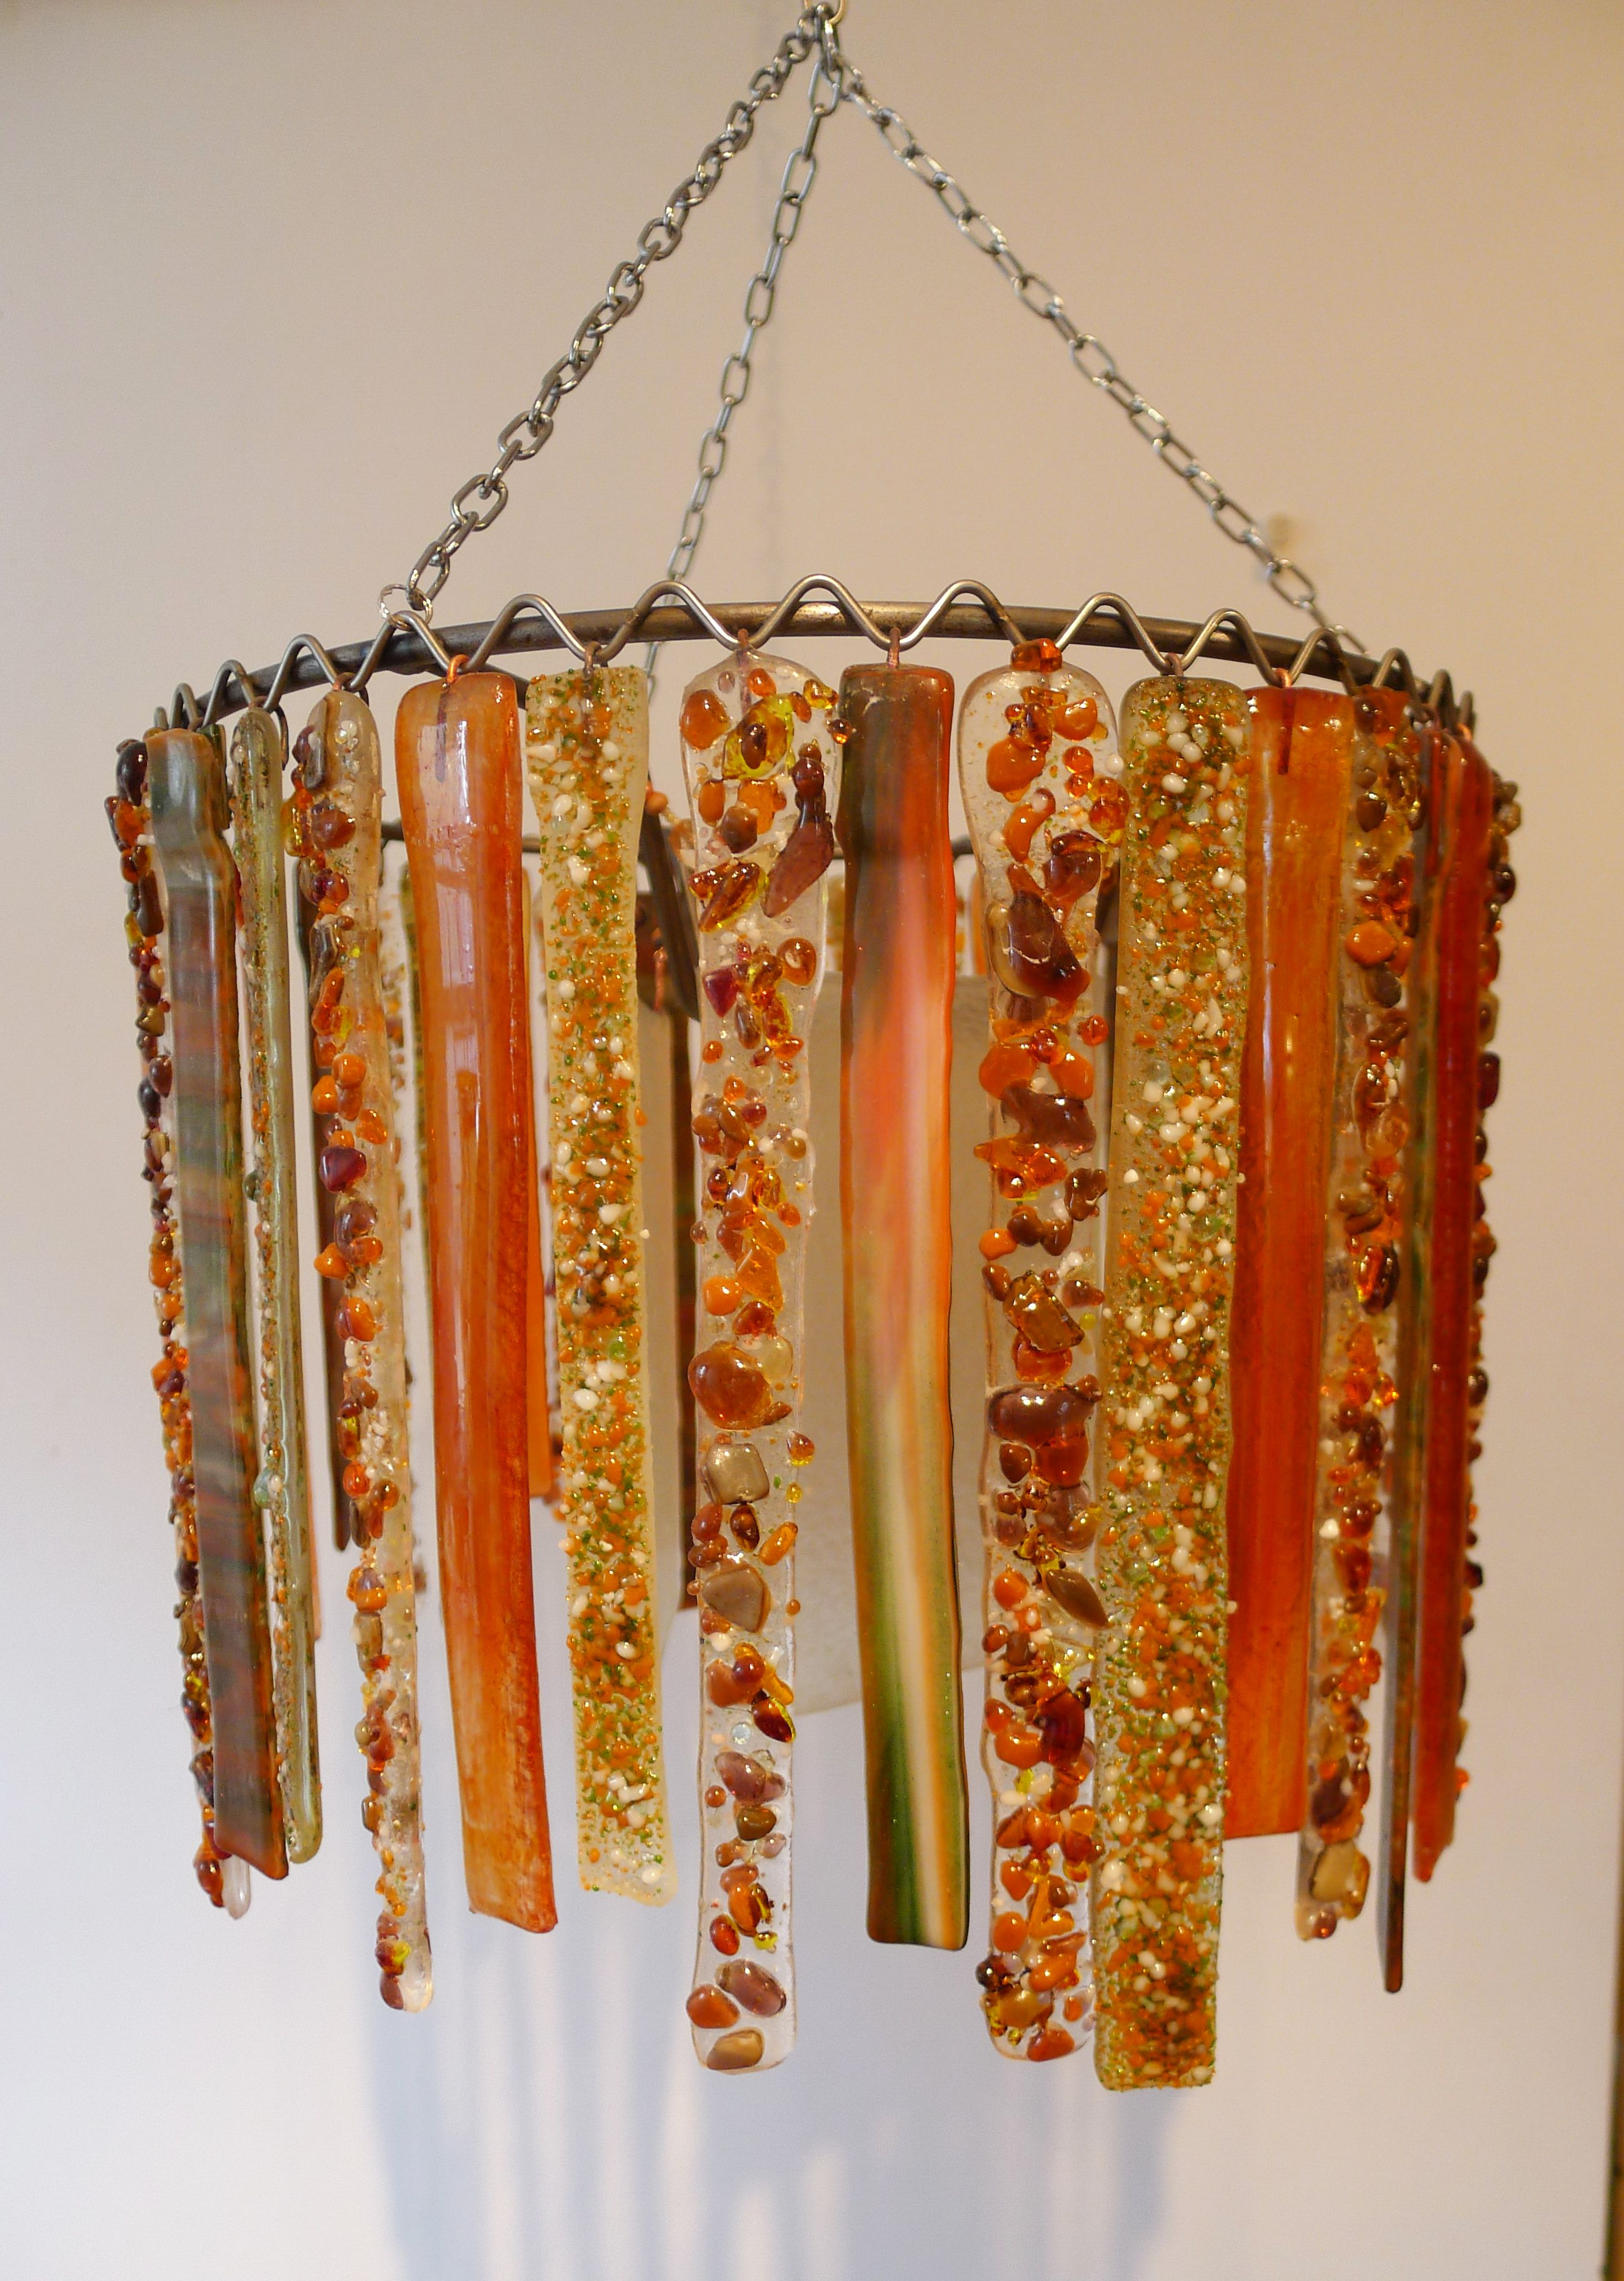 Lovers Lights recycled glass single tier chandlelier light. Tangerine and sea green. Commissioned by client. www.loverslights.com